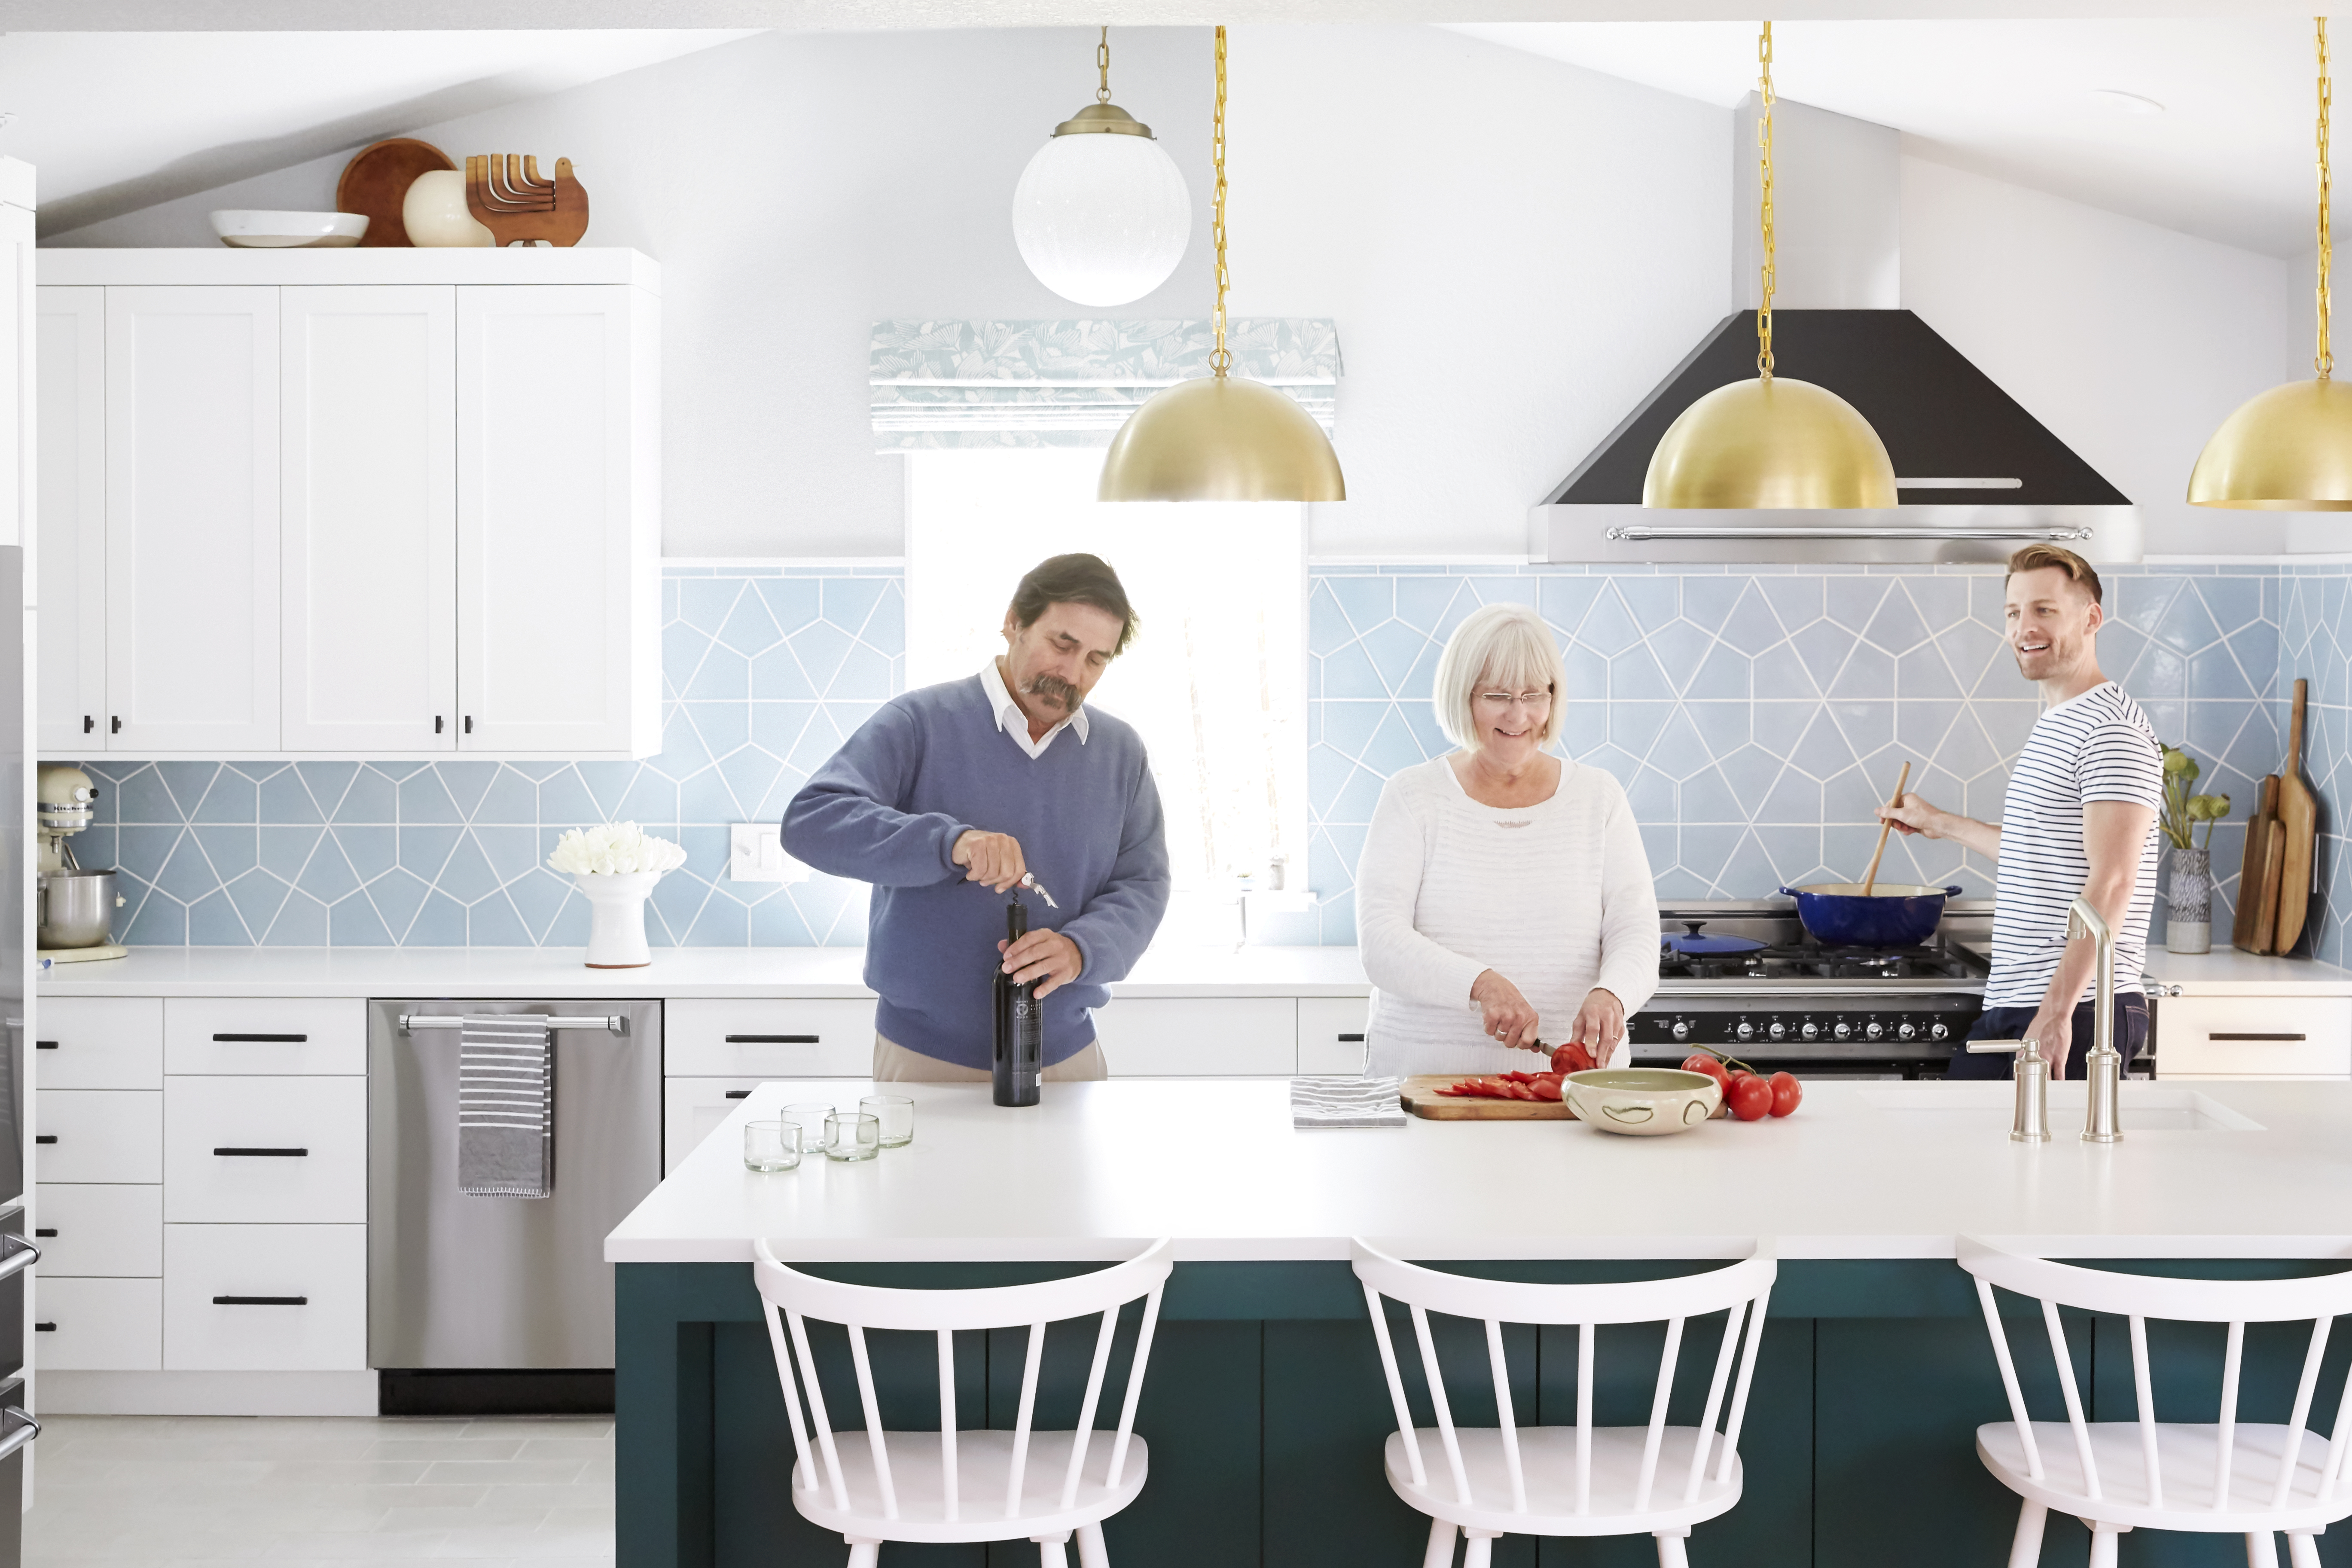 Orlando Soria and his parents in their new kitchen.